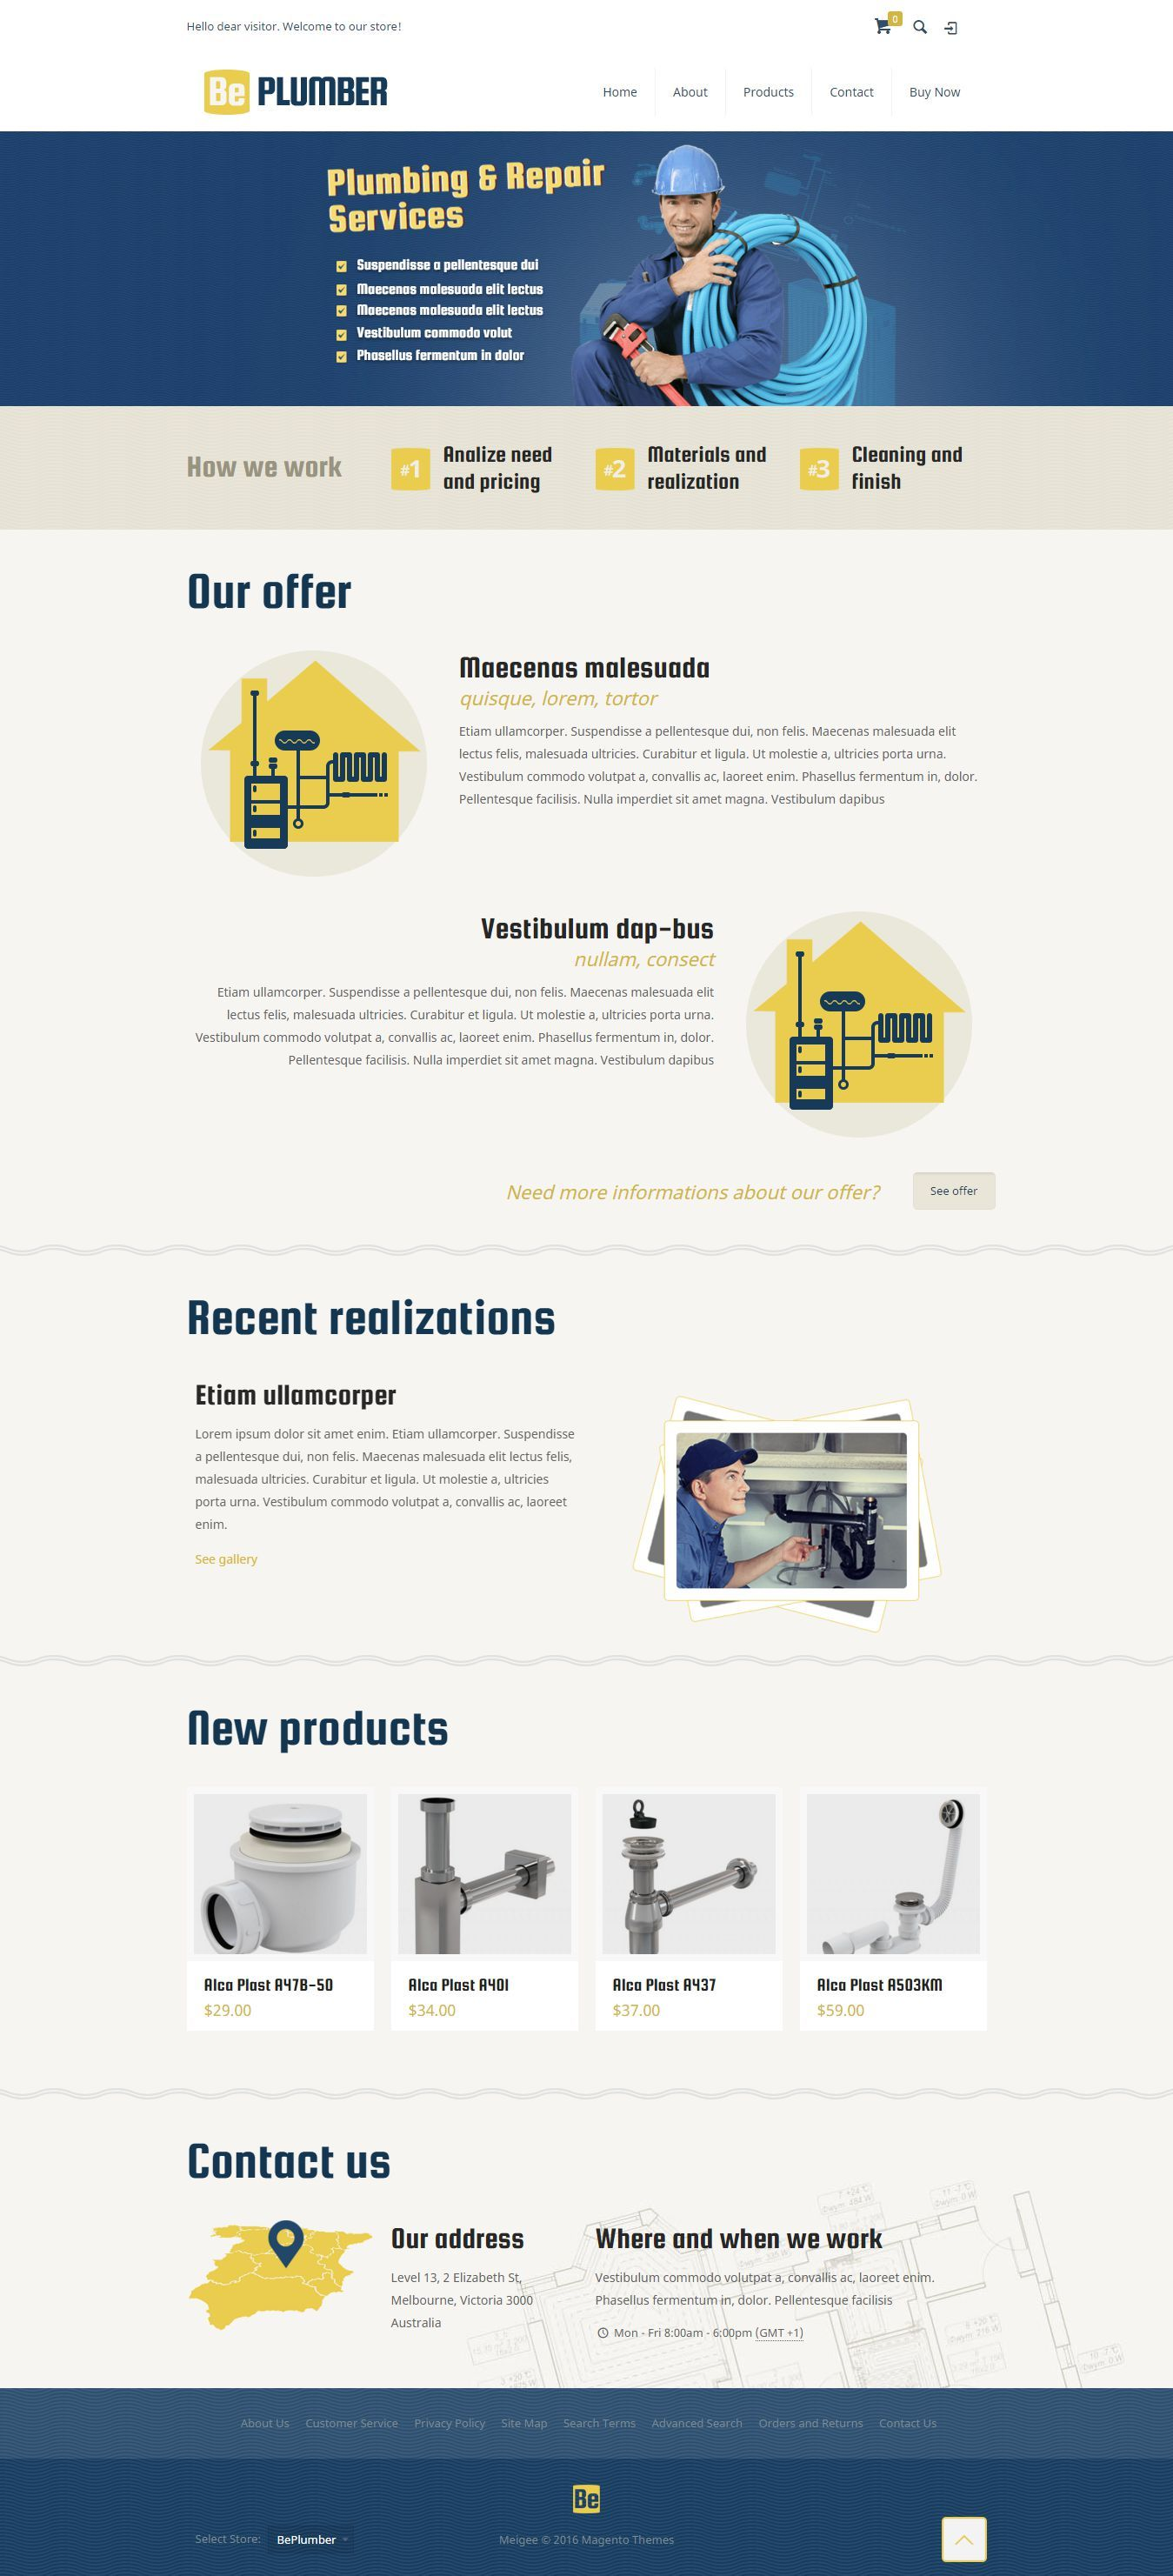 BeTheme Multipurpose Responsive #Magento Theme for Plumbing and Repair Services Website. Demo 18 #Plumber #Handyman #SANITARY #Template